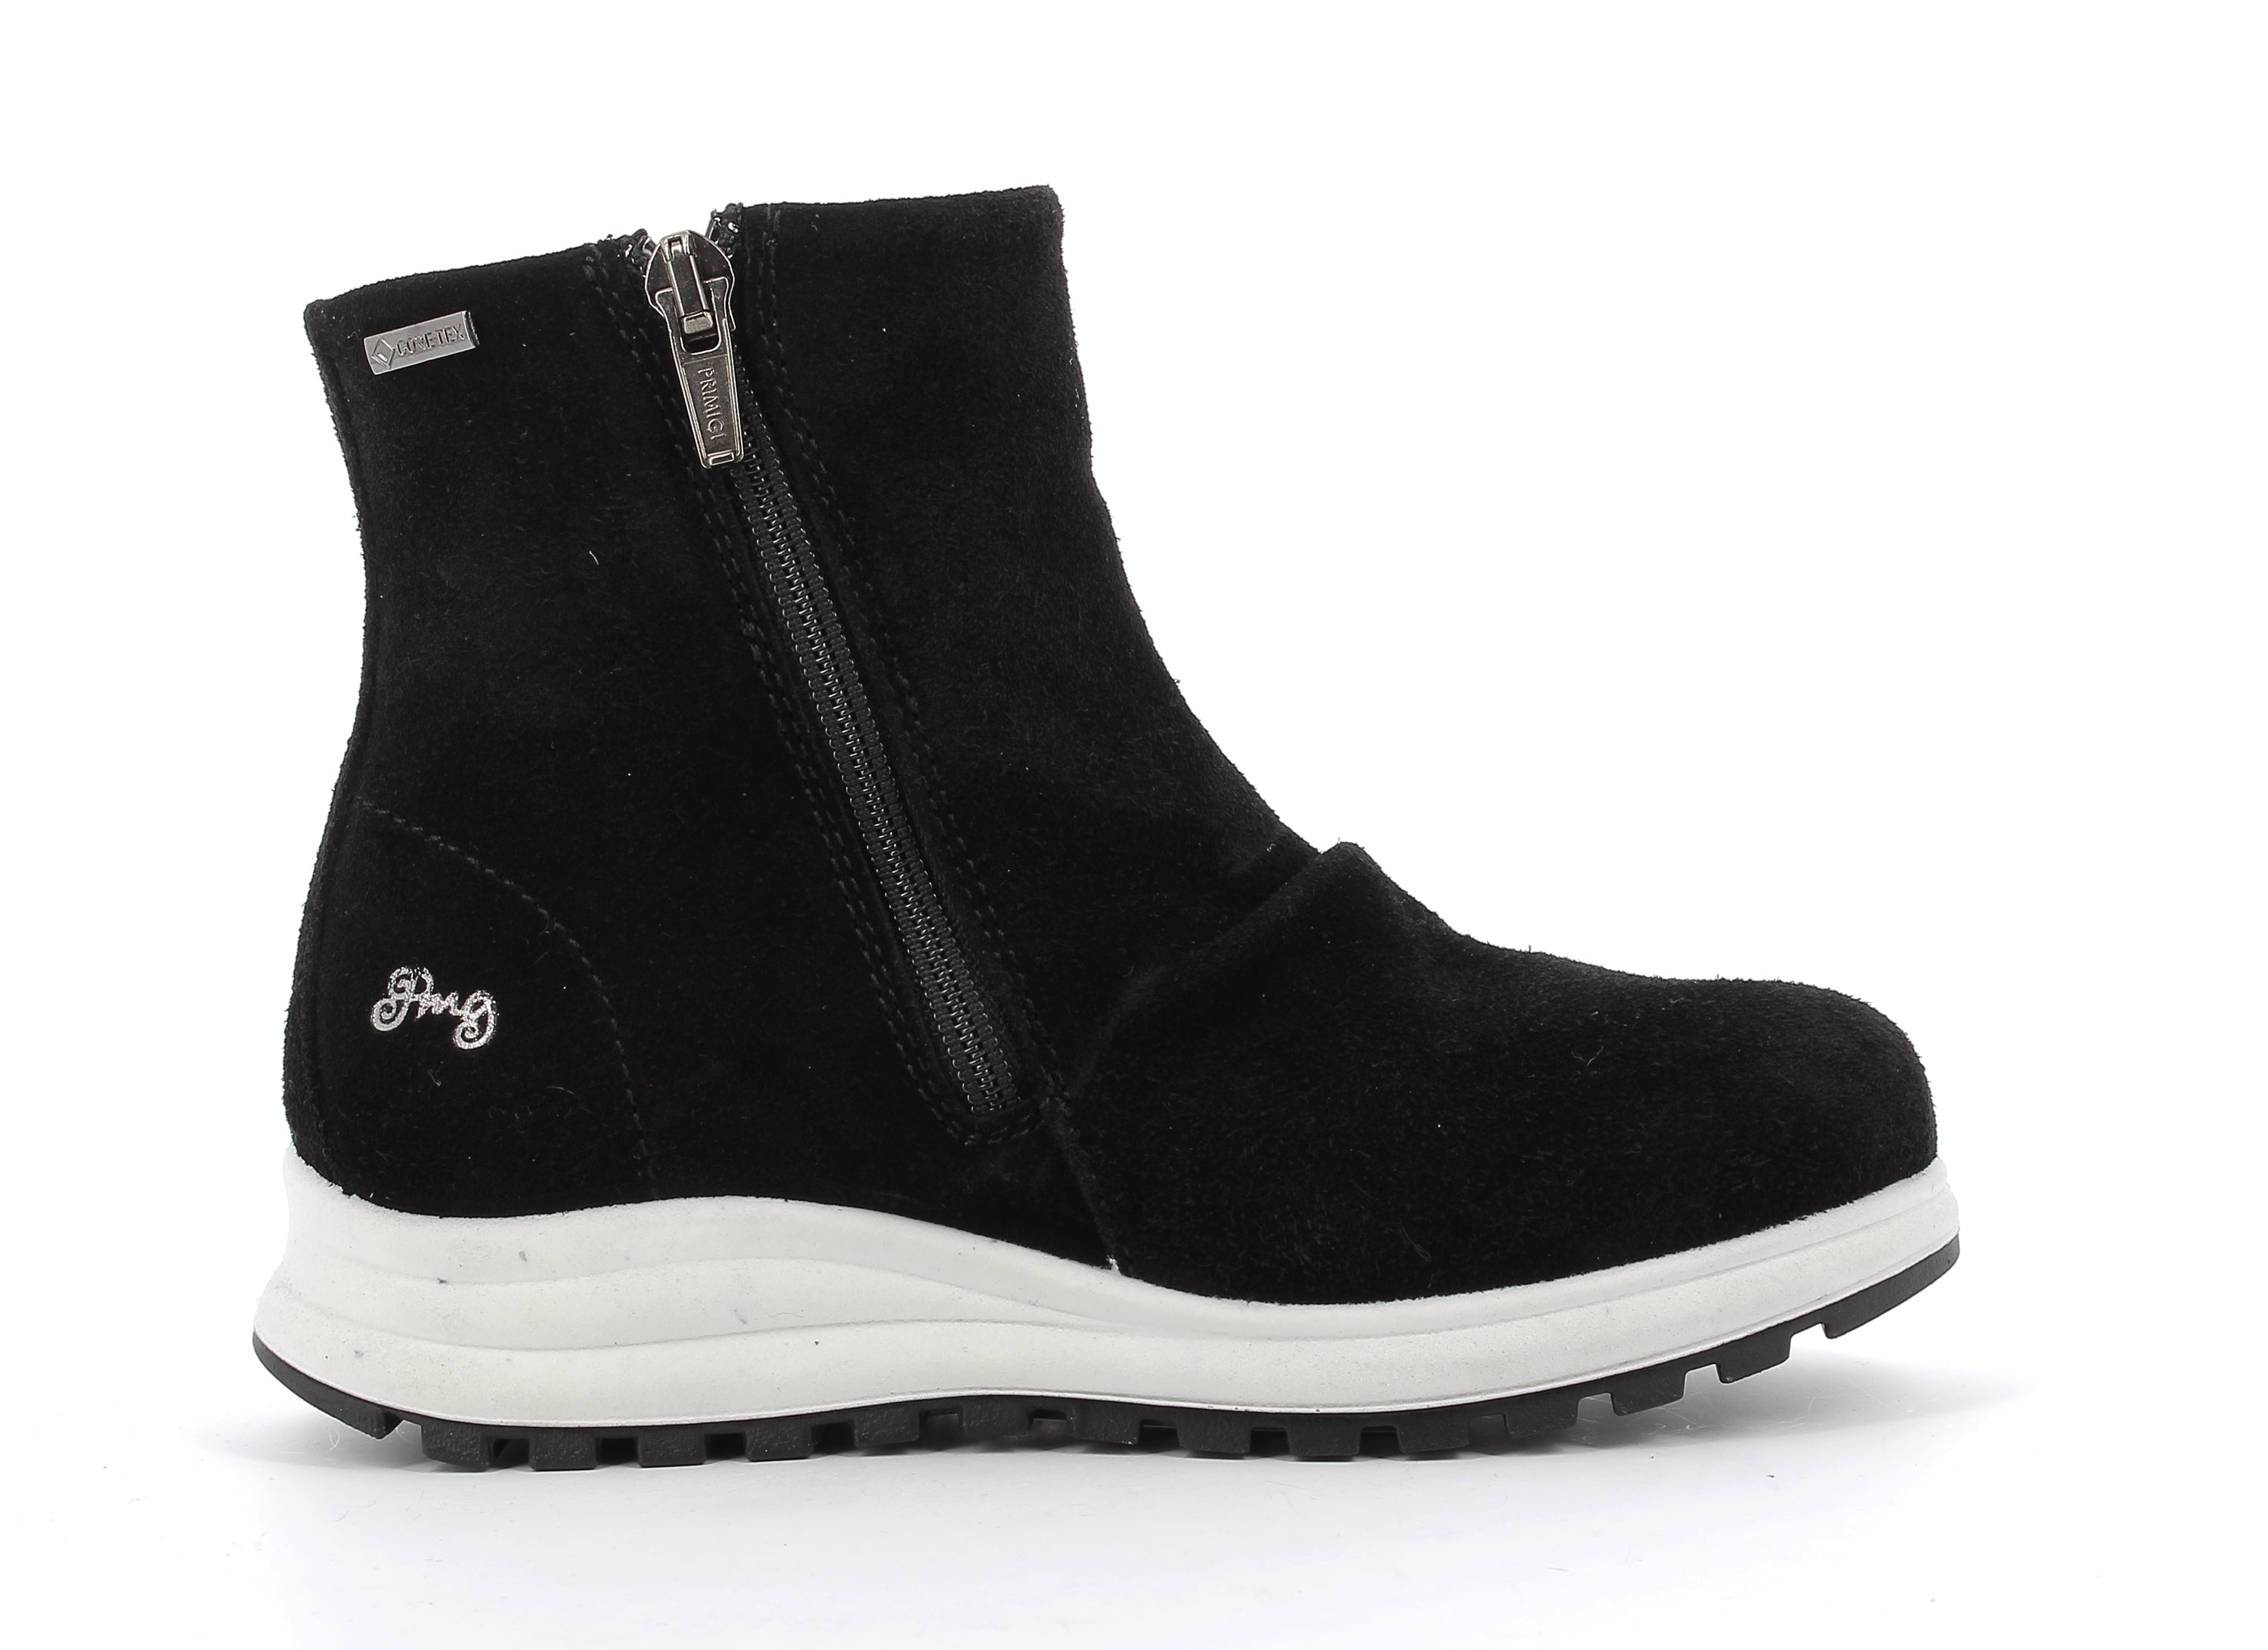 Black Suede With White Sole Sporty Look Booties With Zipper